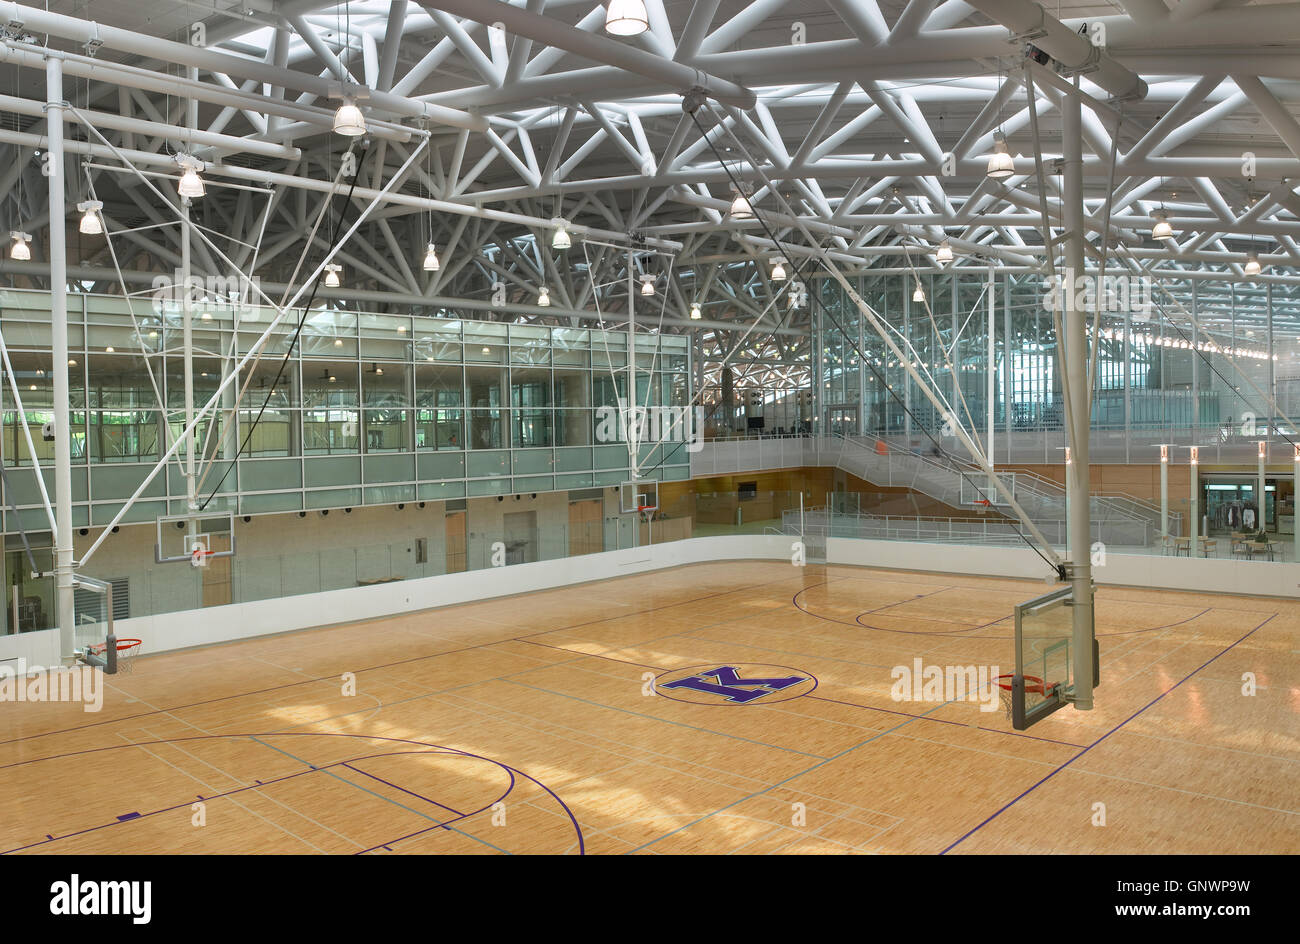 Stunning Free Indoor Basketball Courts Pictures - Interior Design ...